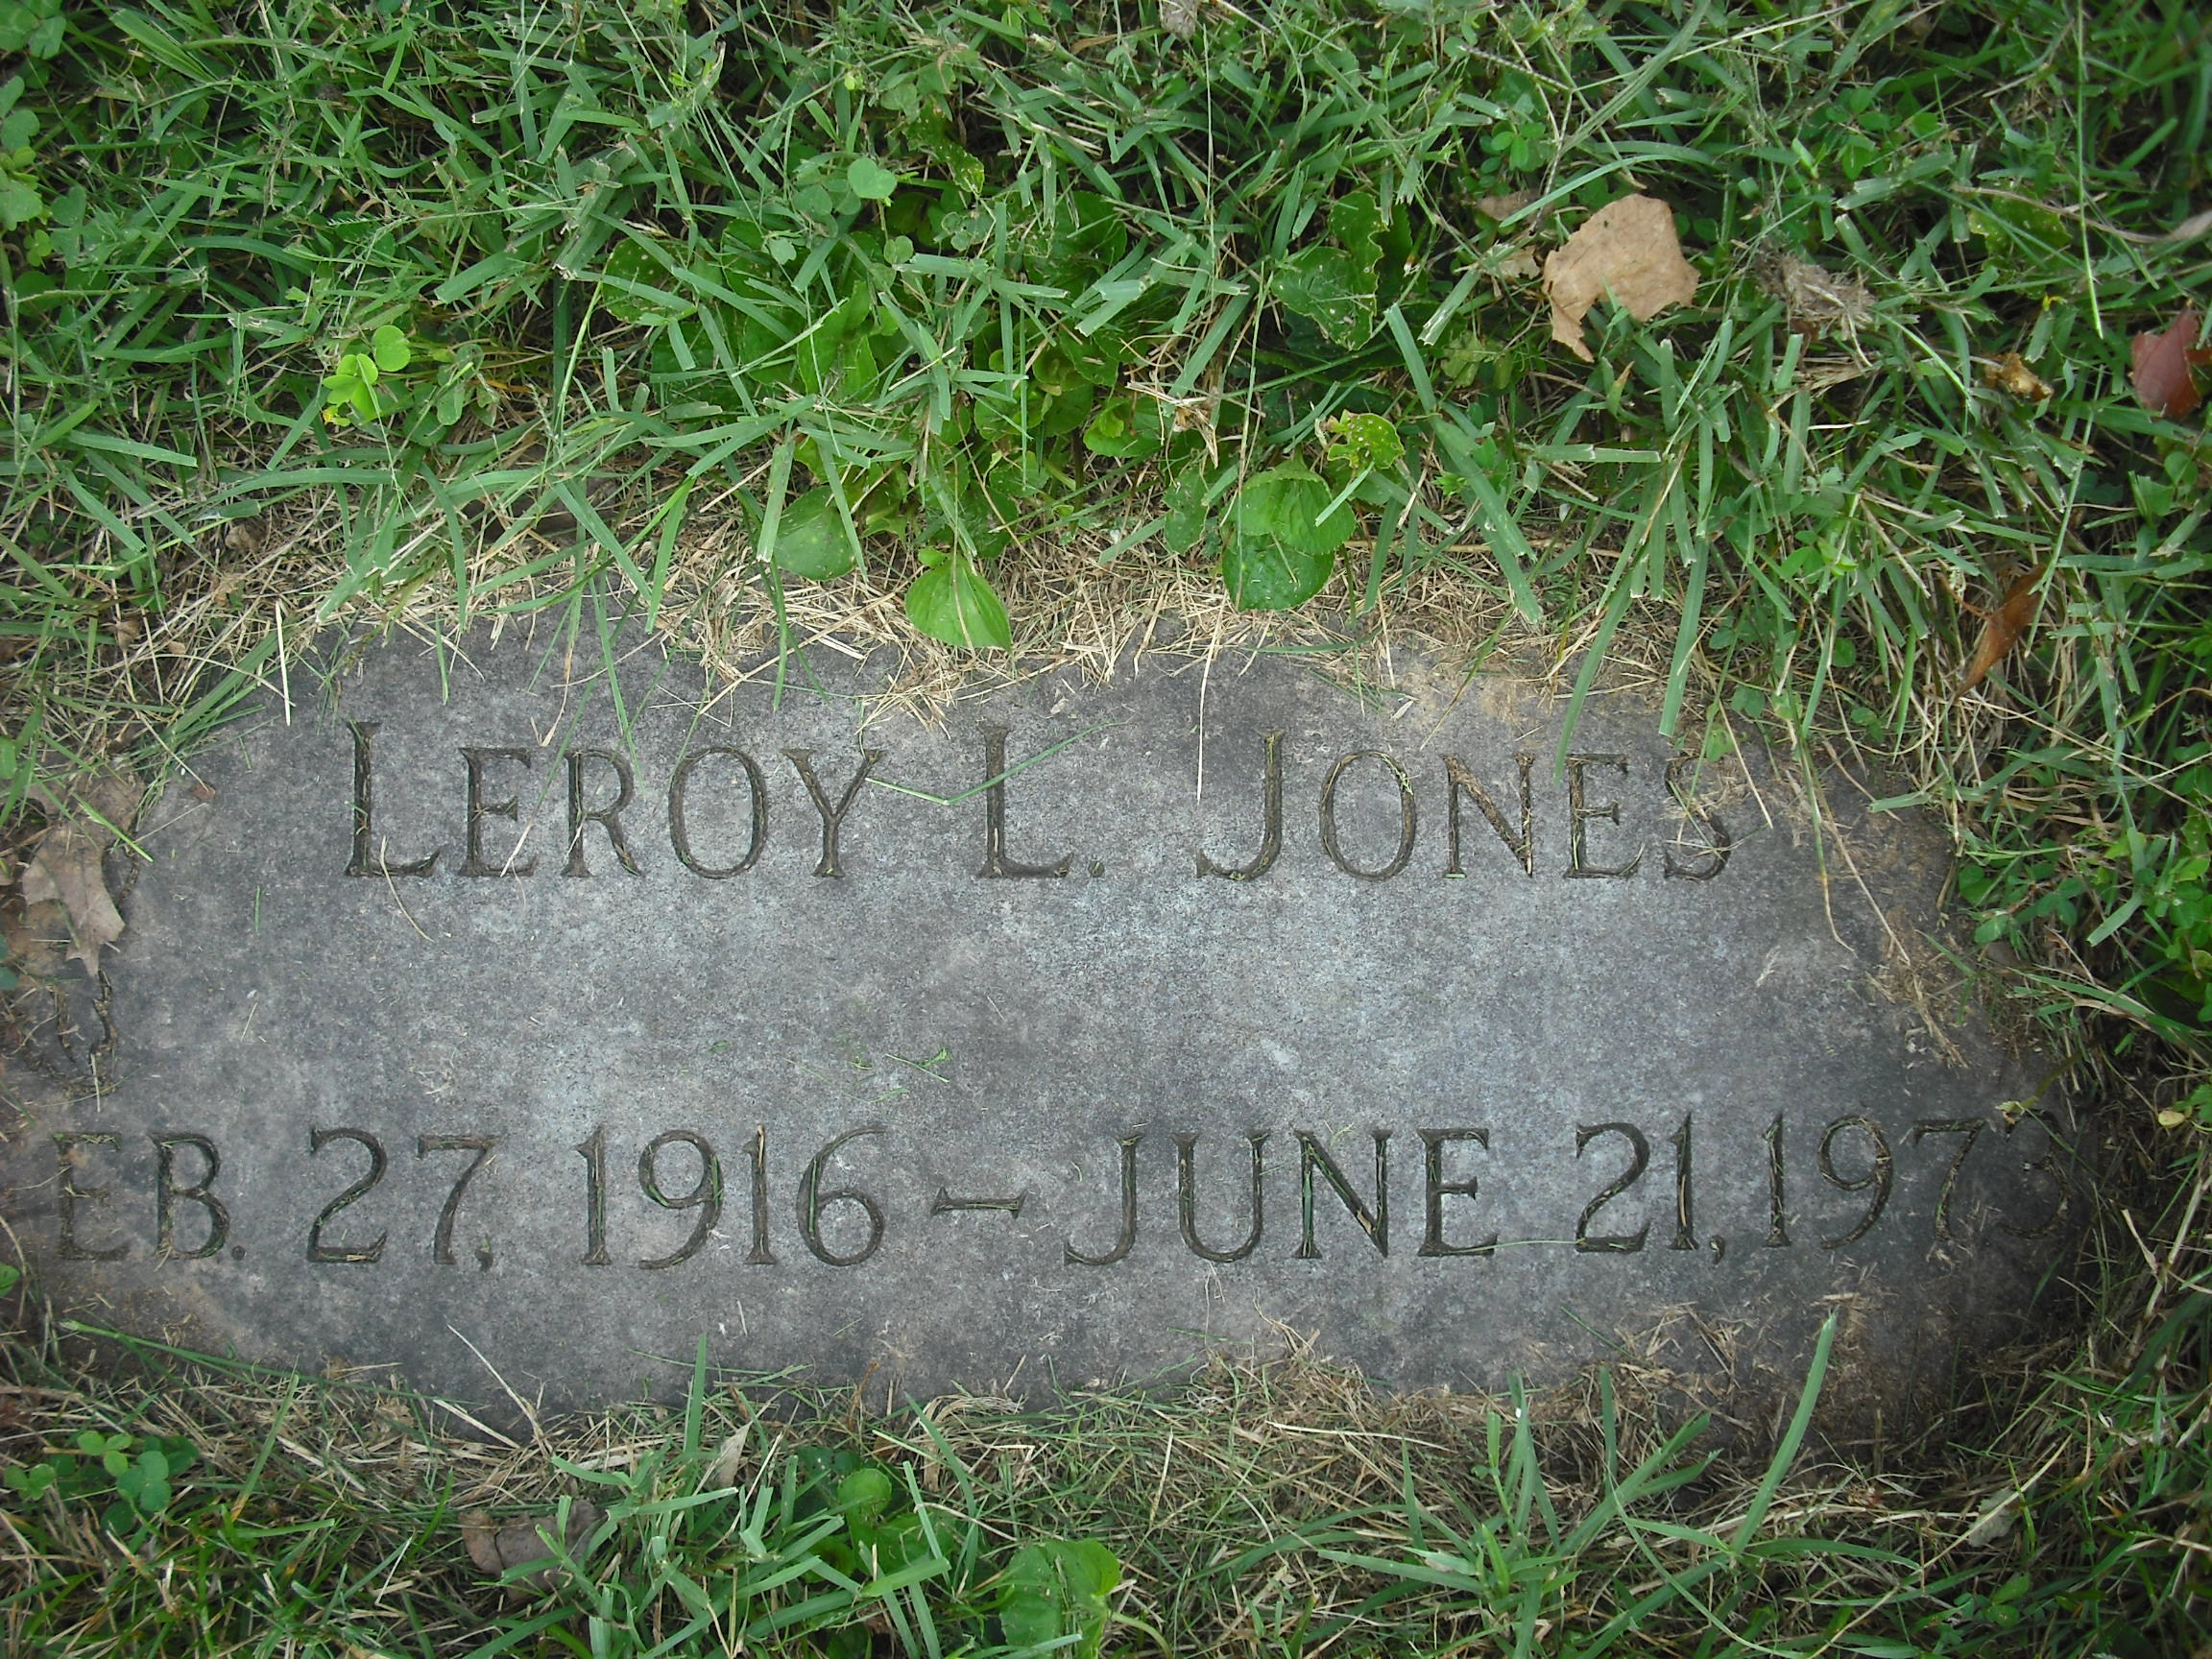 Leroy L Jones